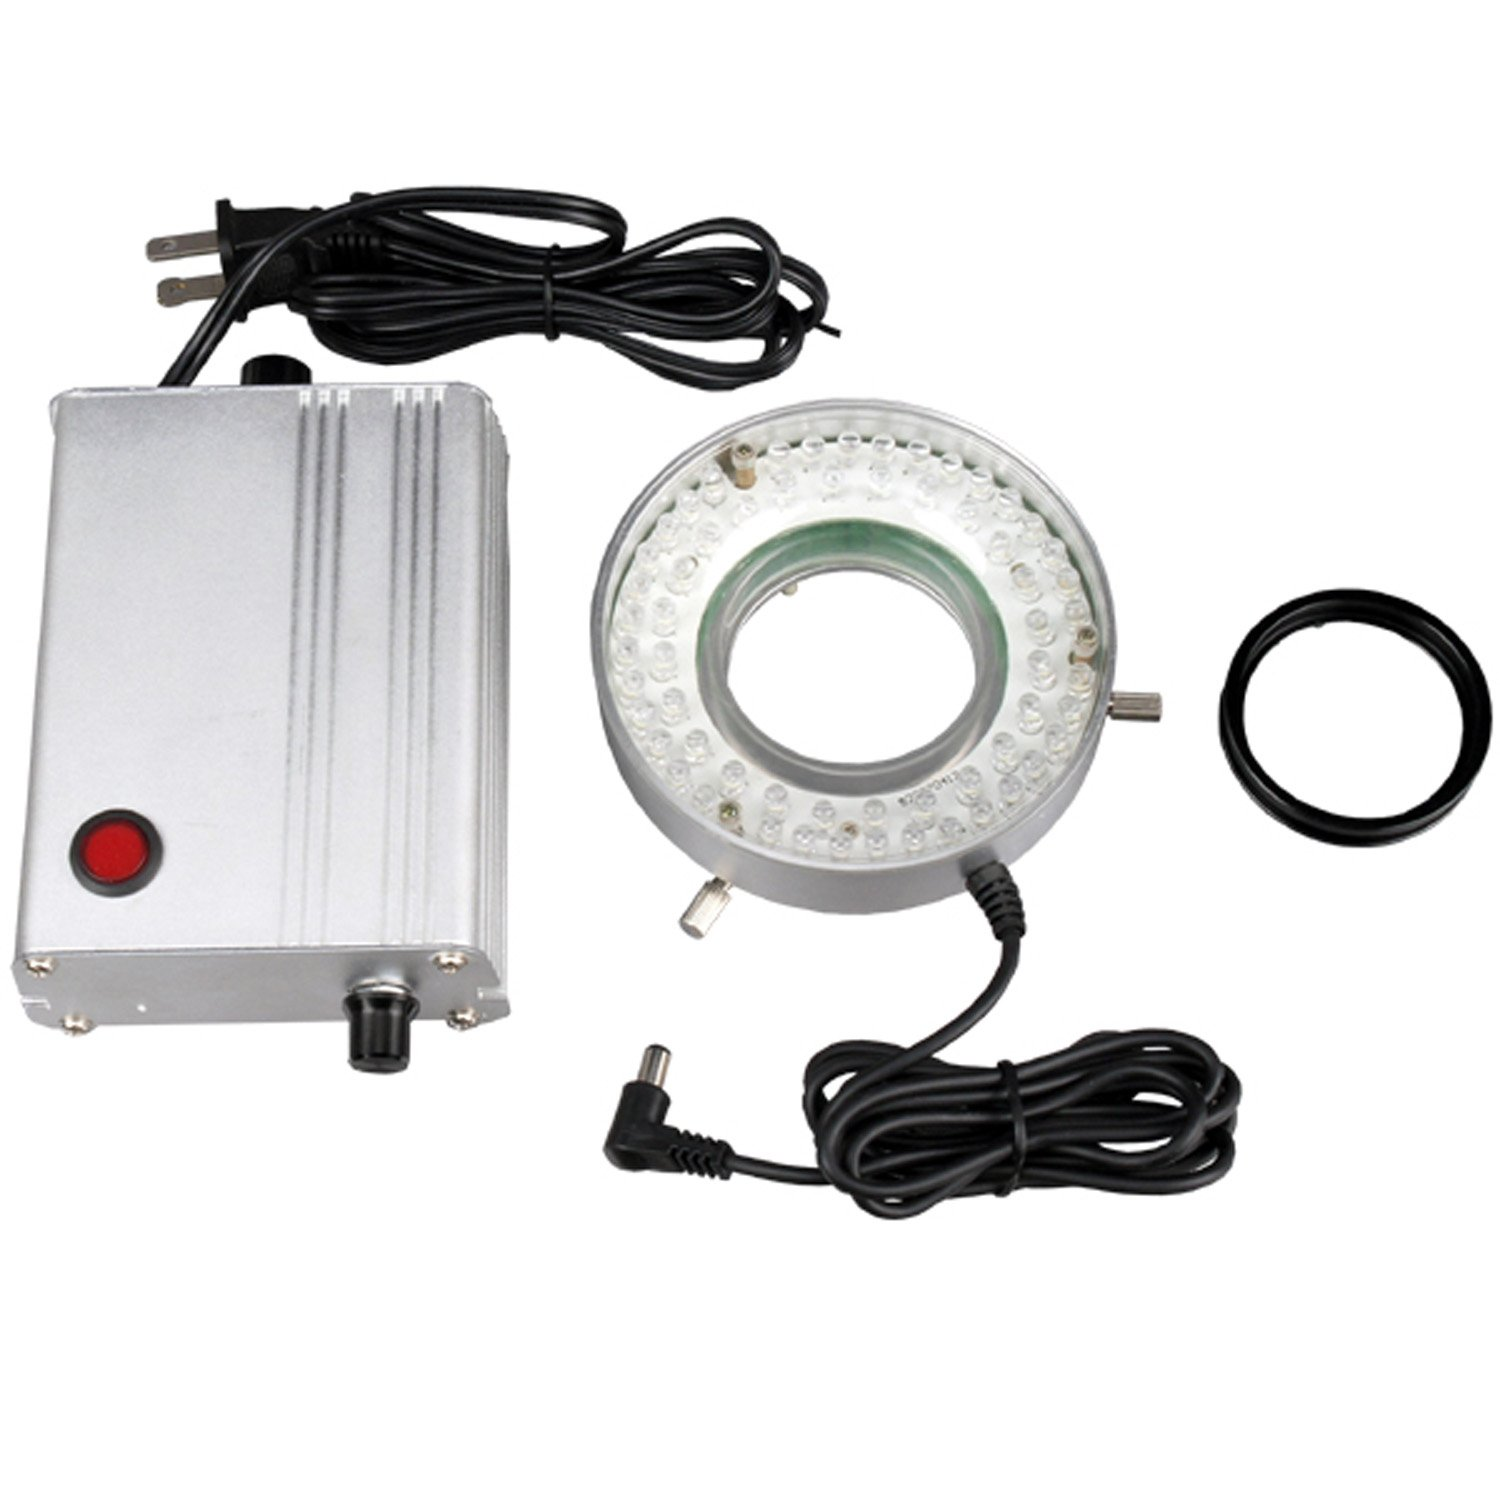 AmScope LED-60MW 60-LED Microscope Ring Light with Heavy-Duty Solid Metal Control Box